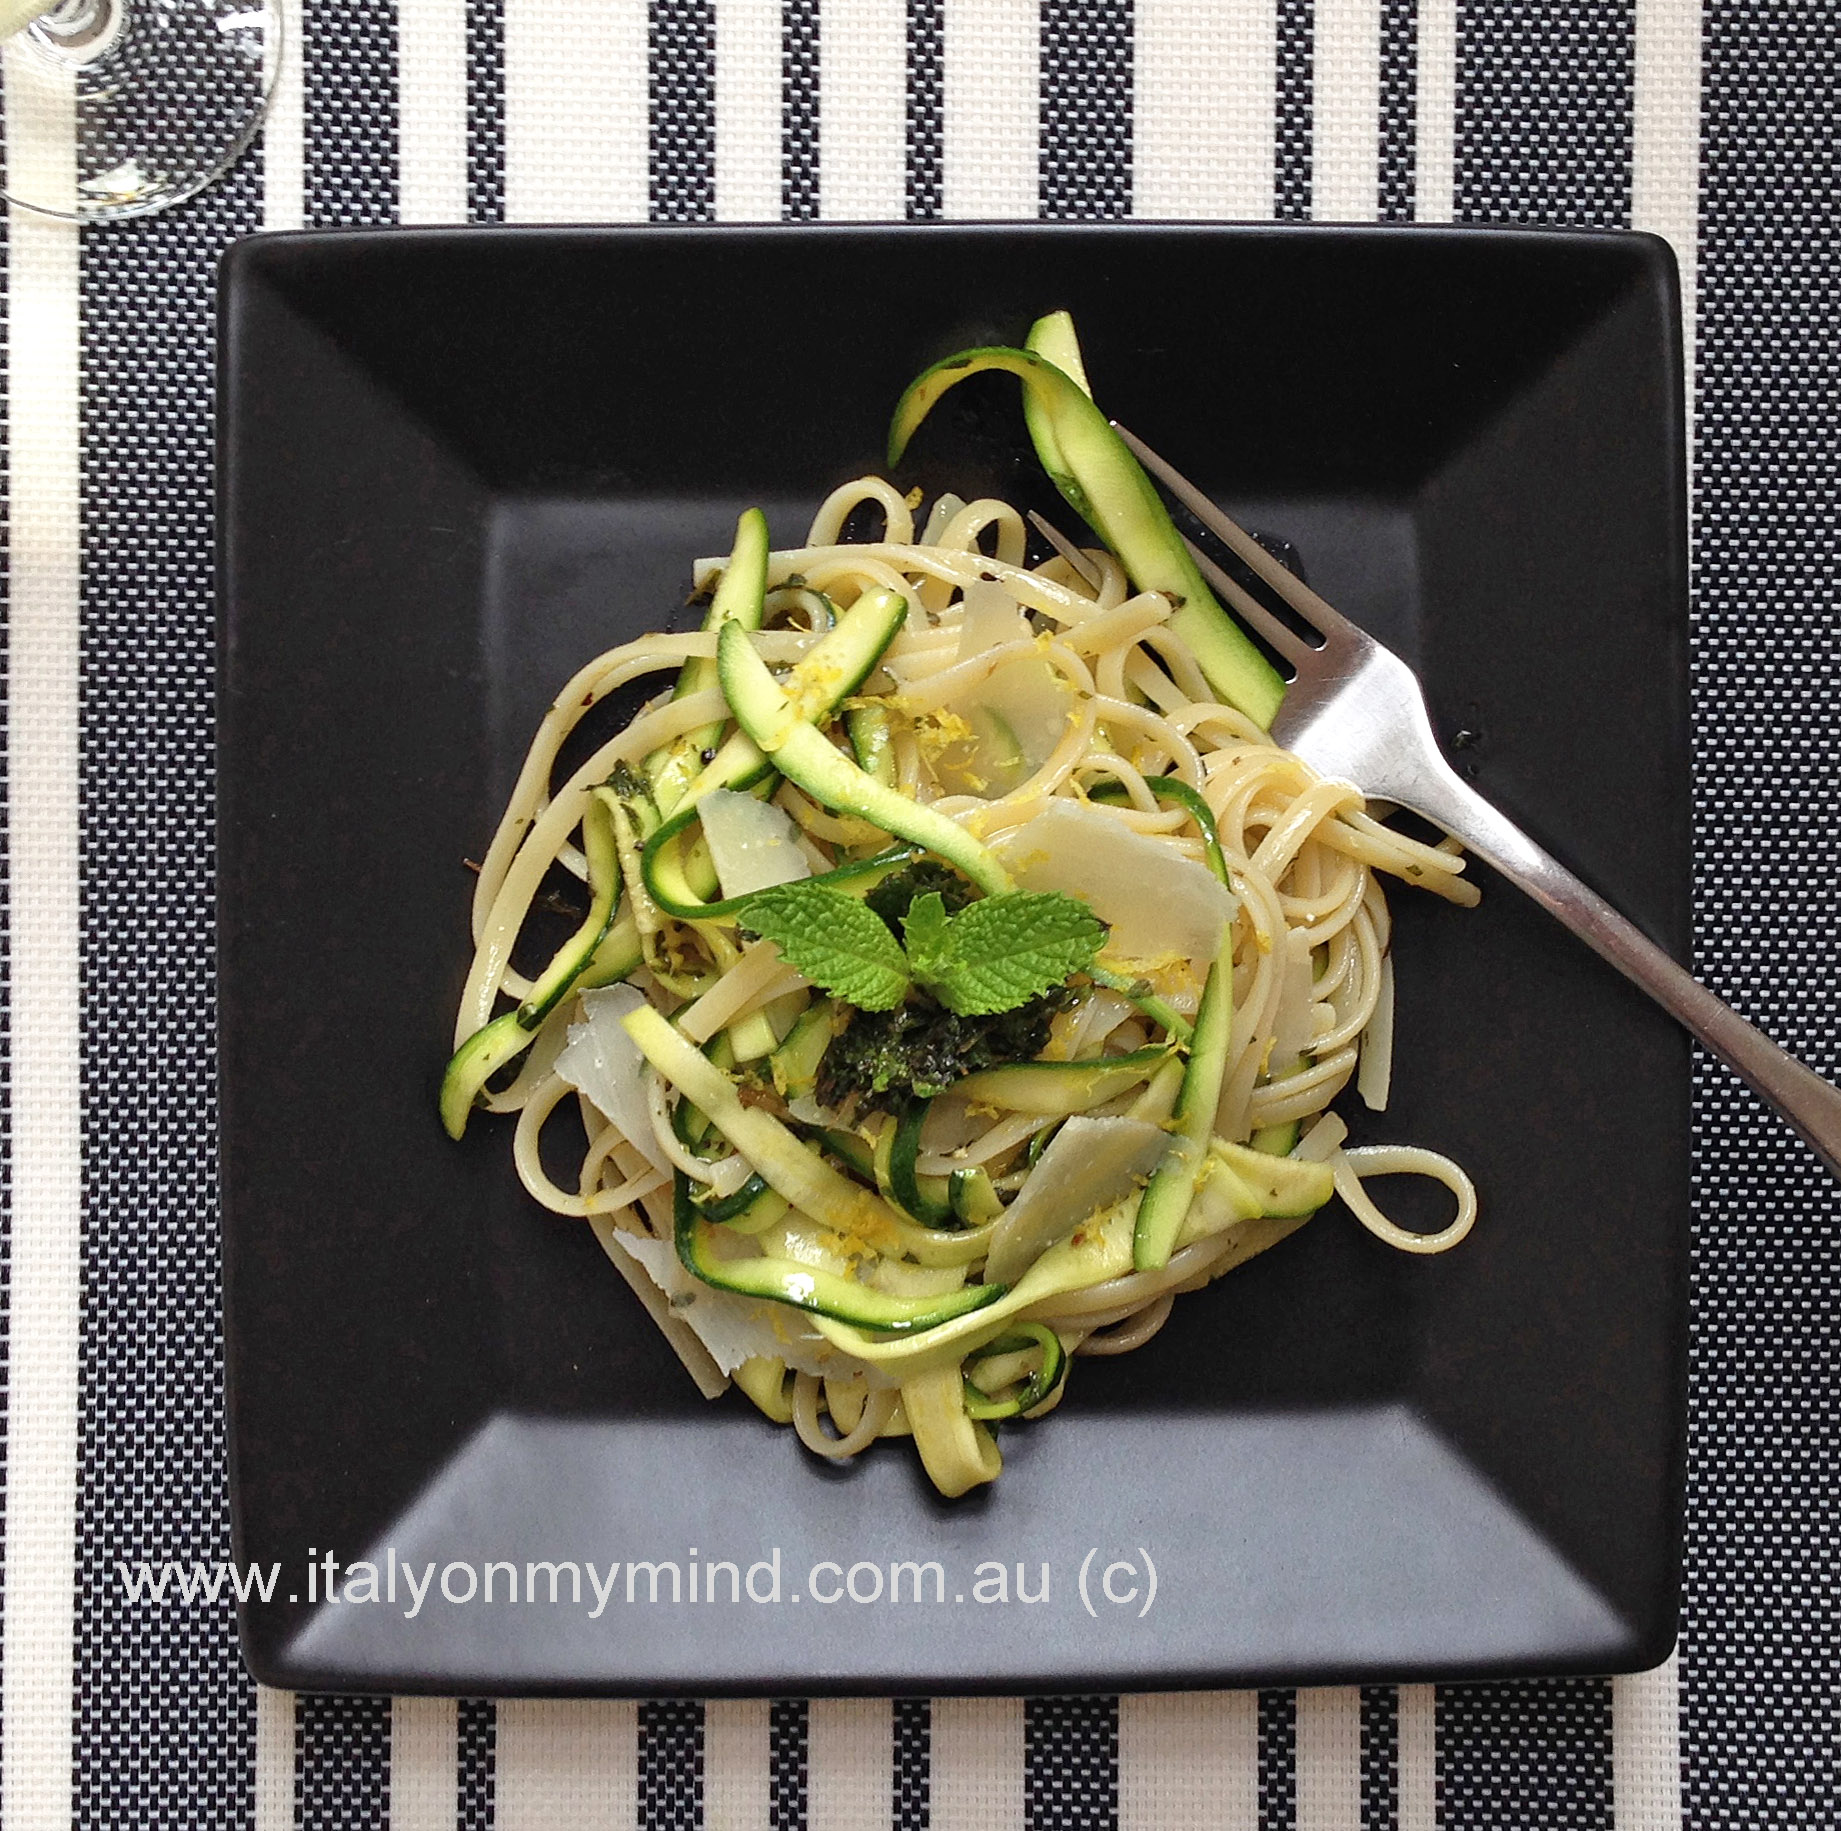 Linguine with zucchini ribbons, mint and lemon